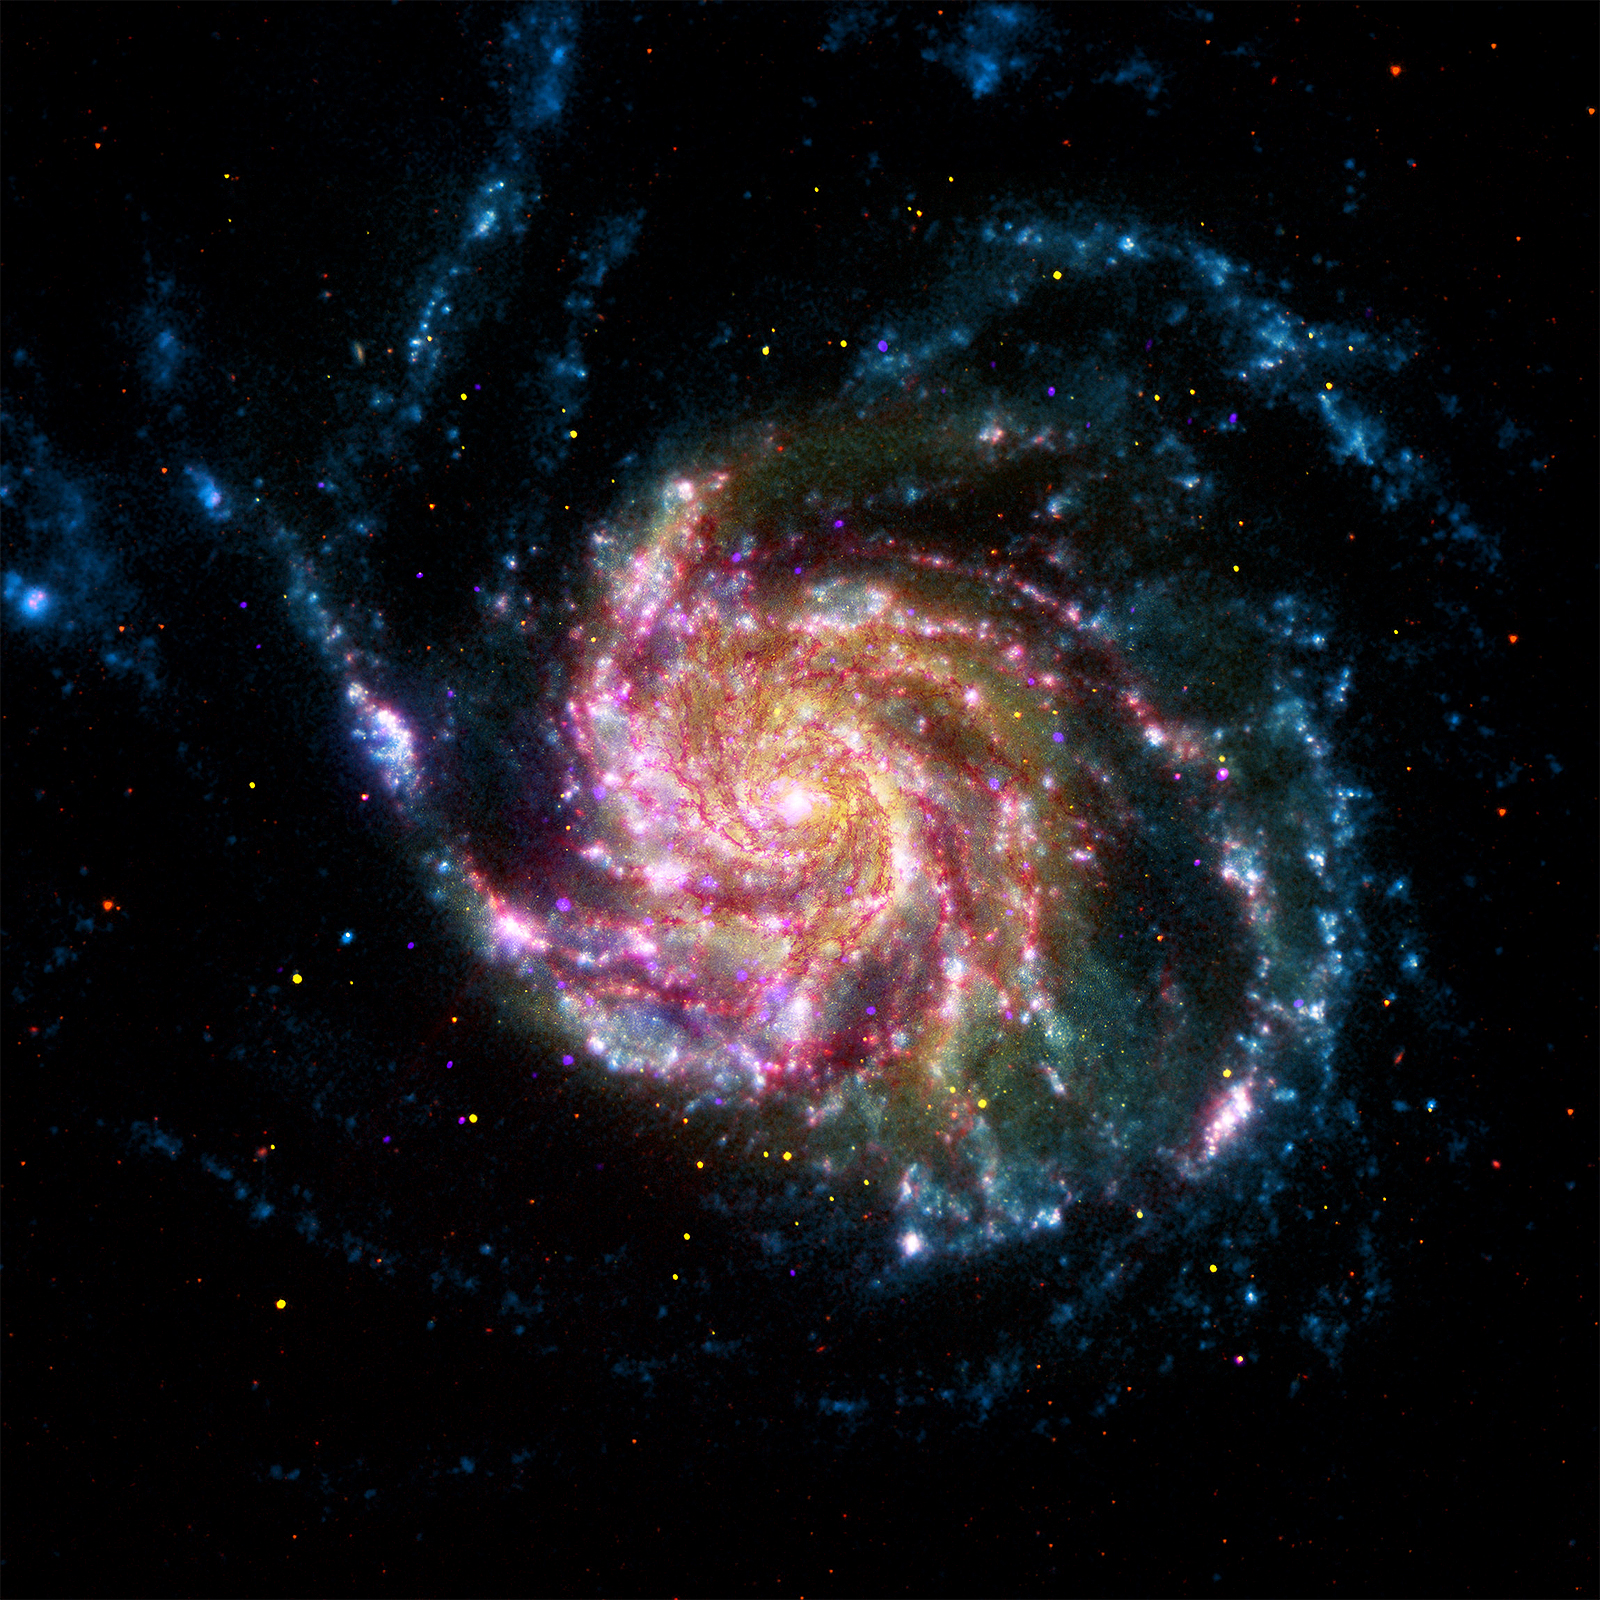 Spiral Galaxy M101 in a beautiful composite image!